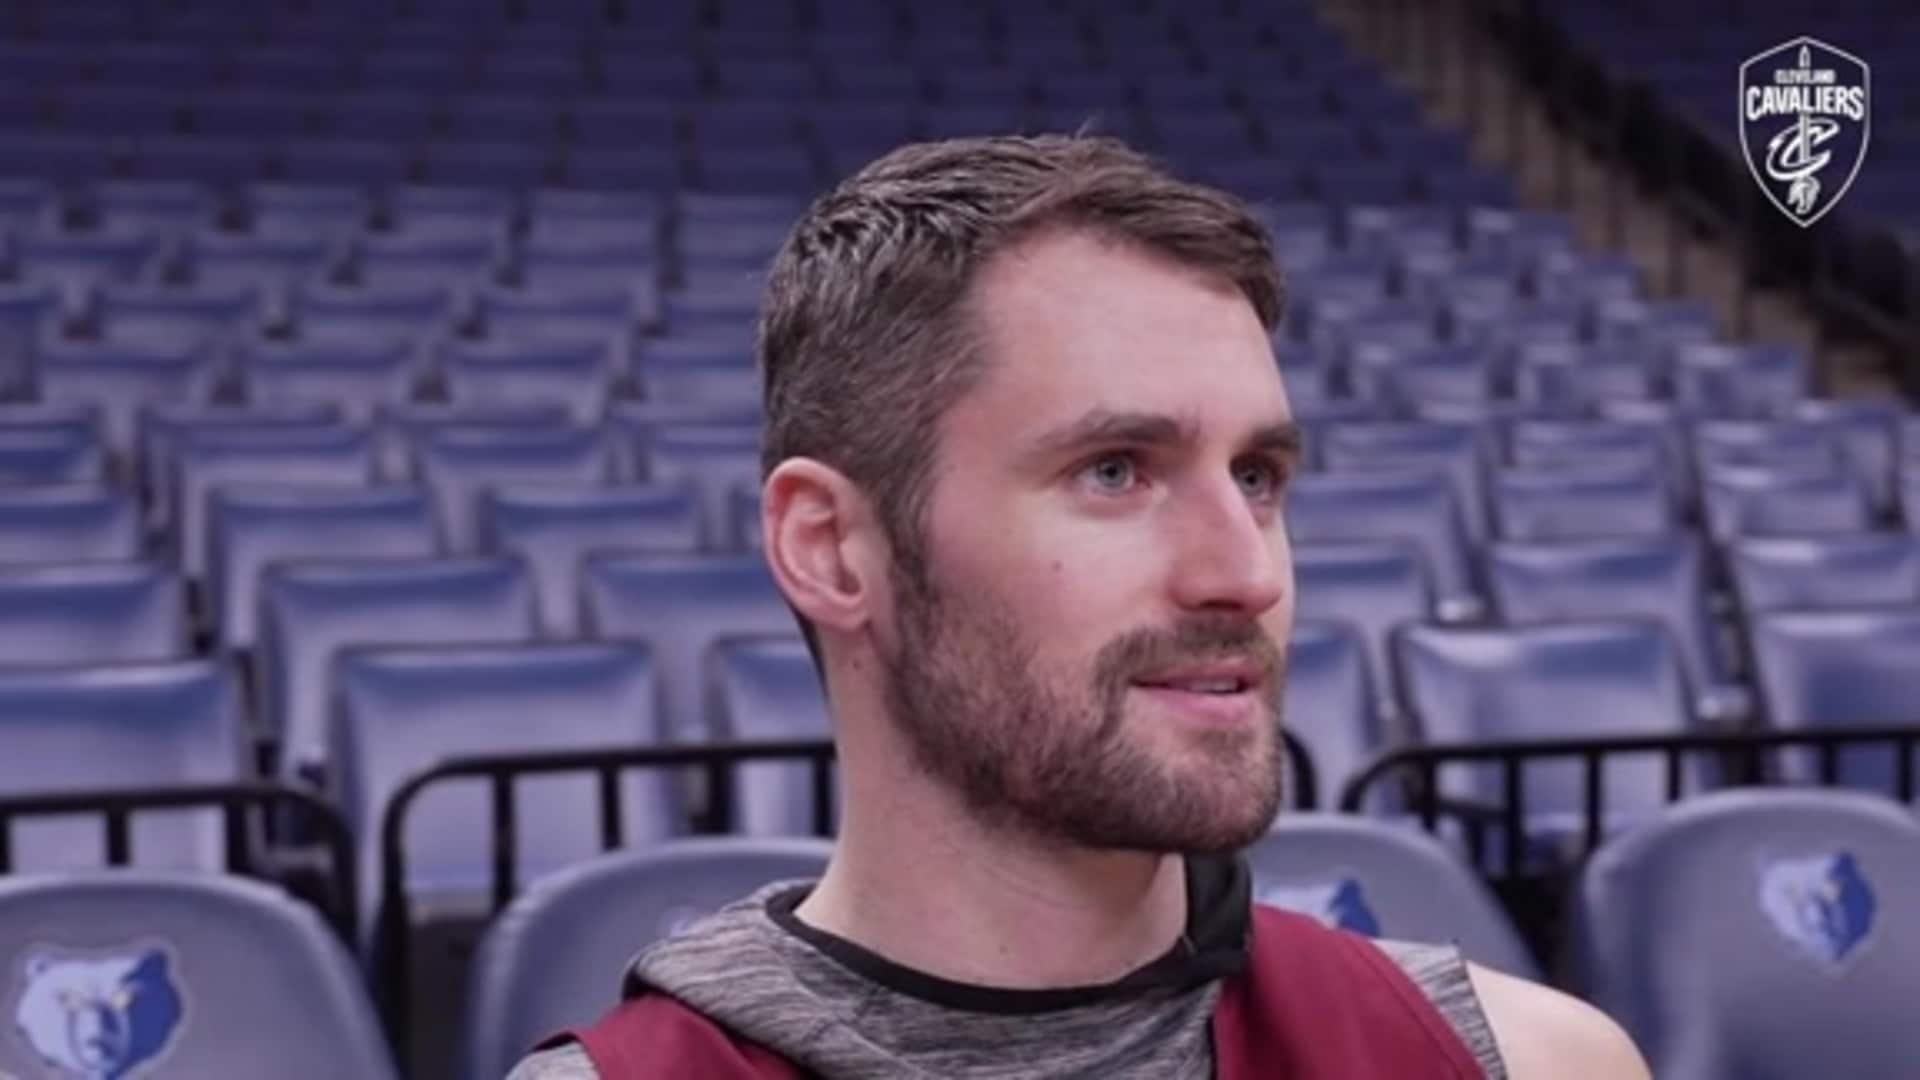 Cavs at Grizzlies Shootaround: Kevin Love